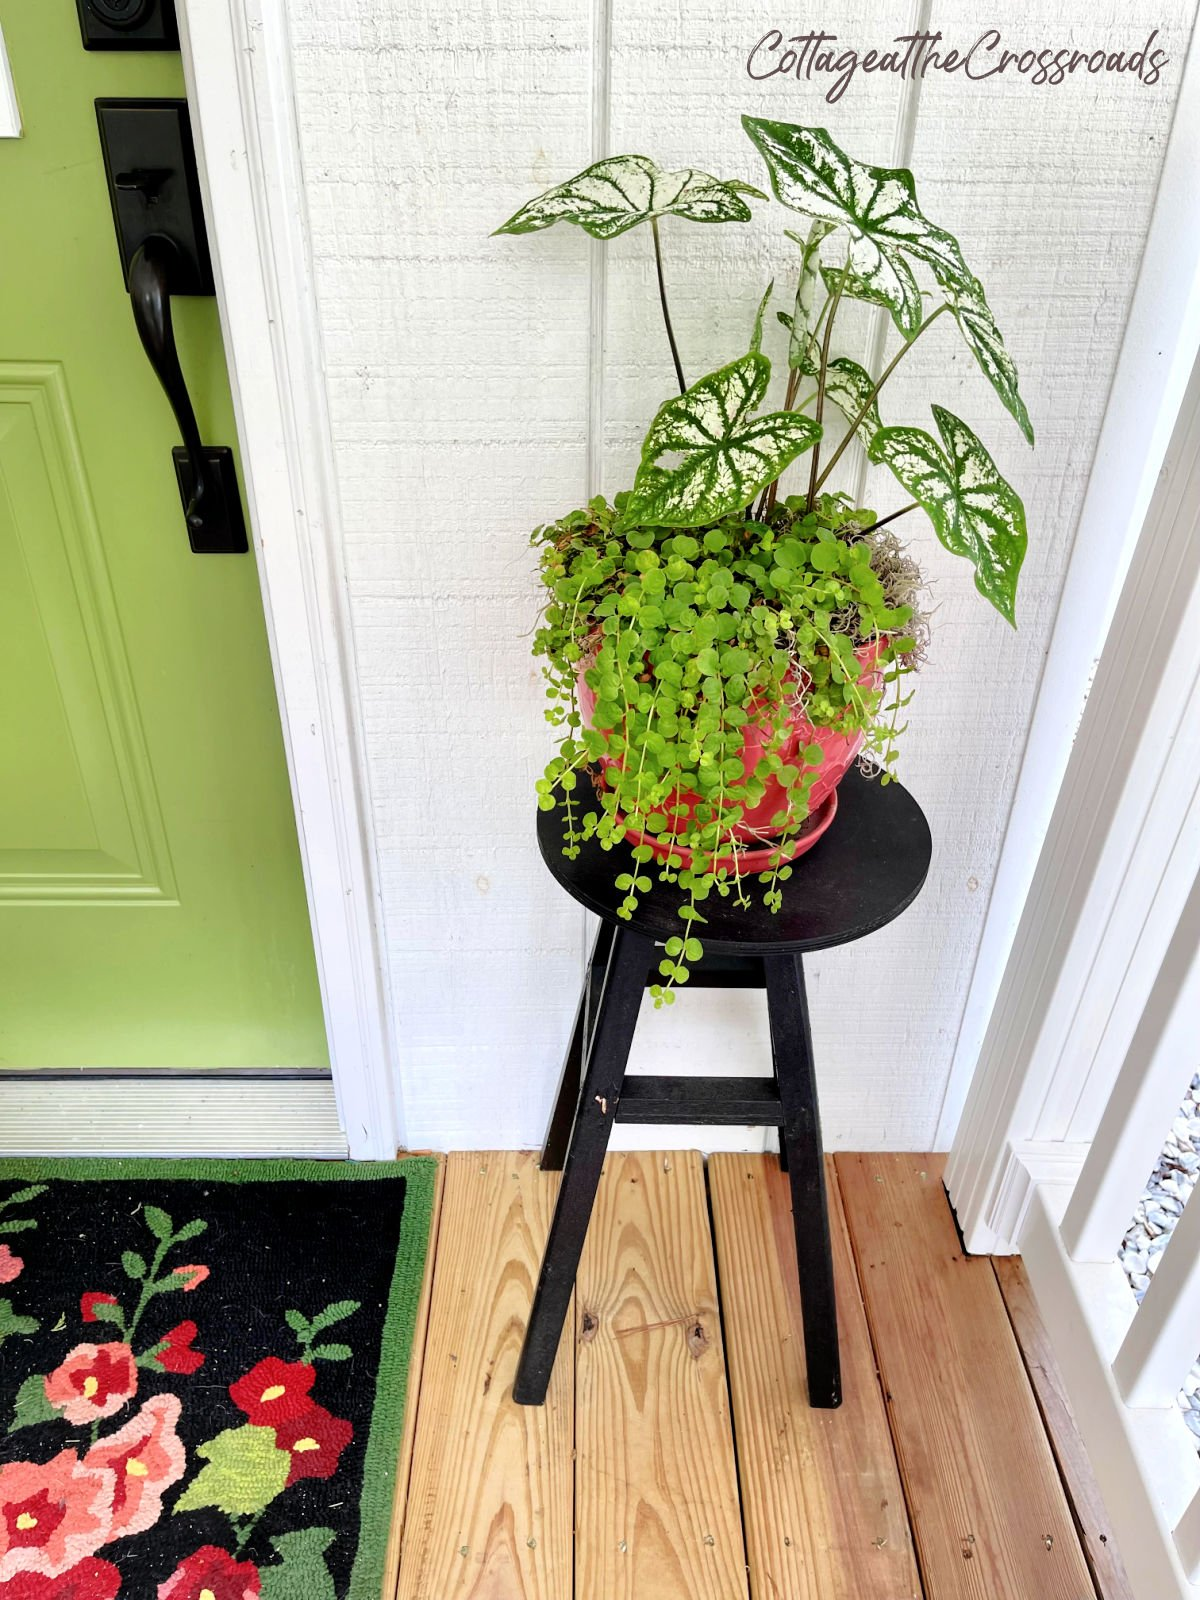 white caladiums and creeping jenny in a planter on a stool